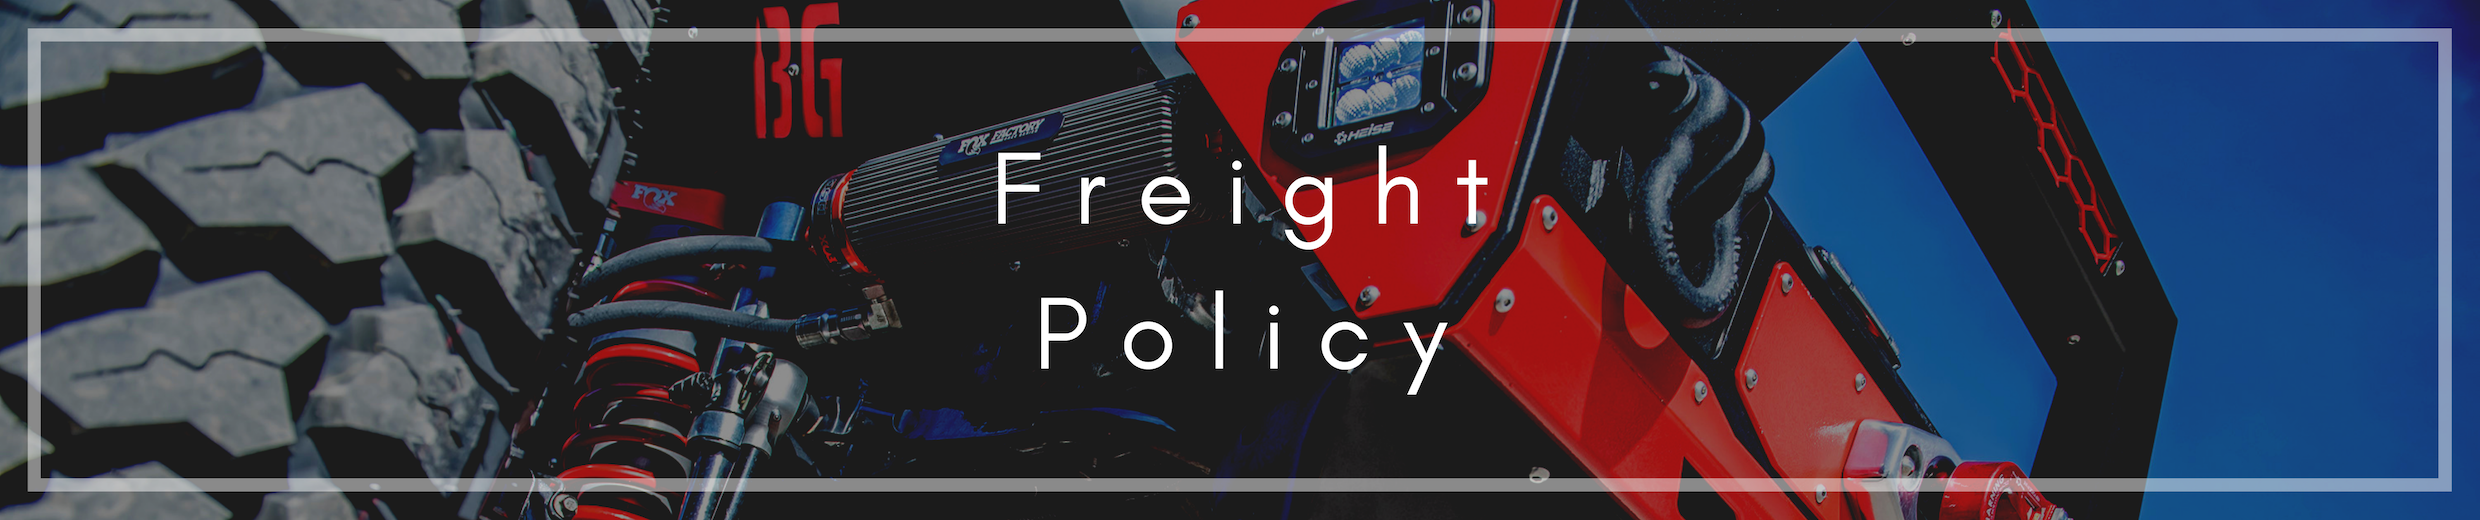 freight-policy-banner.png